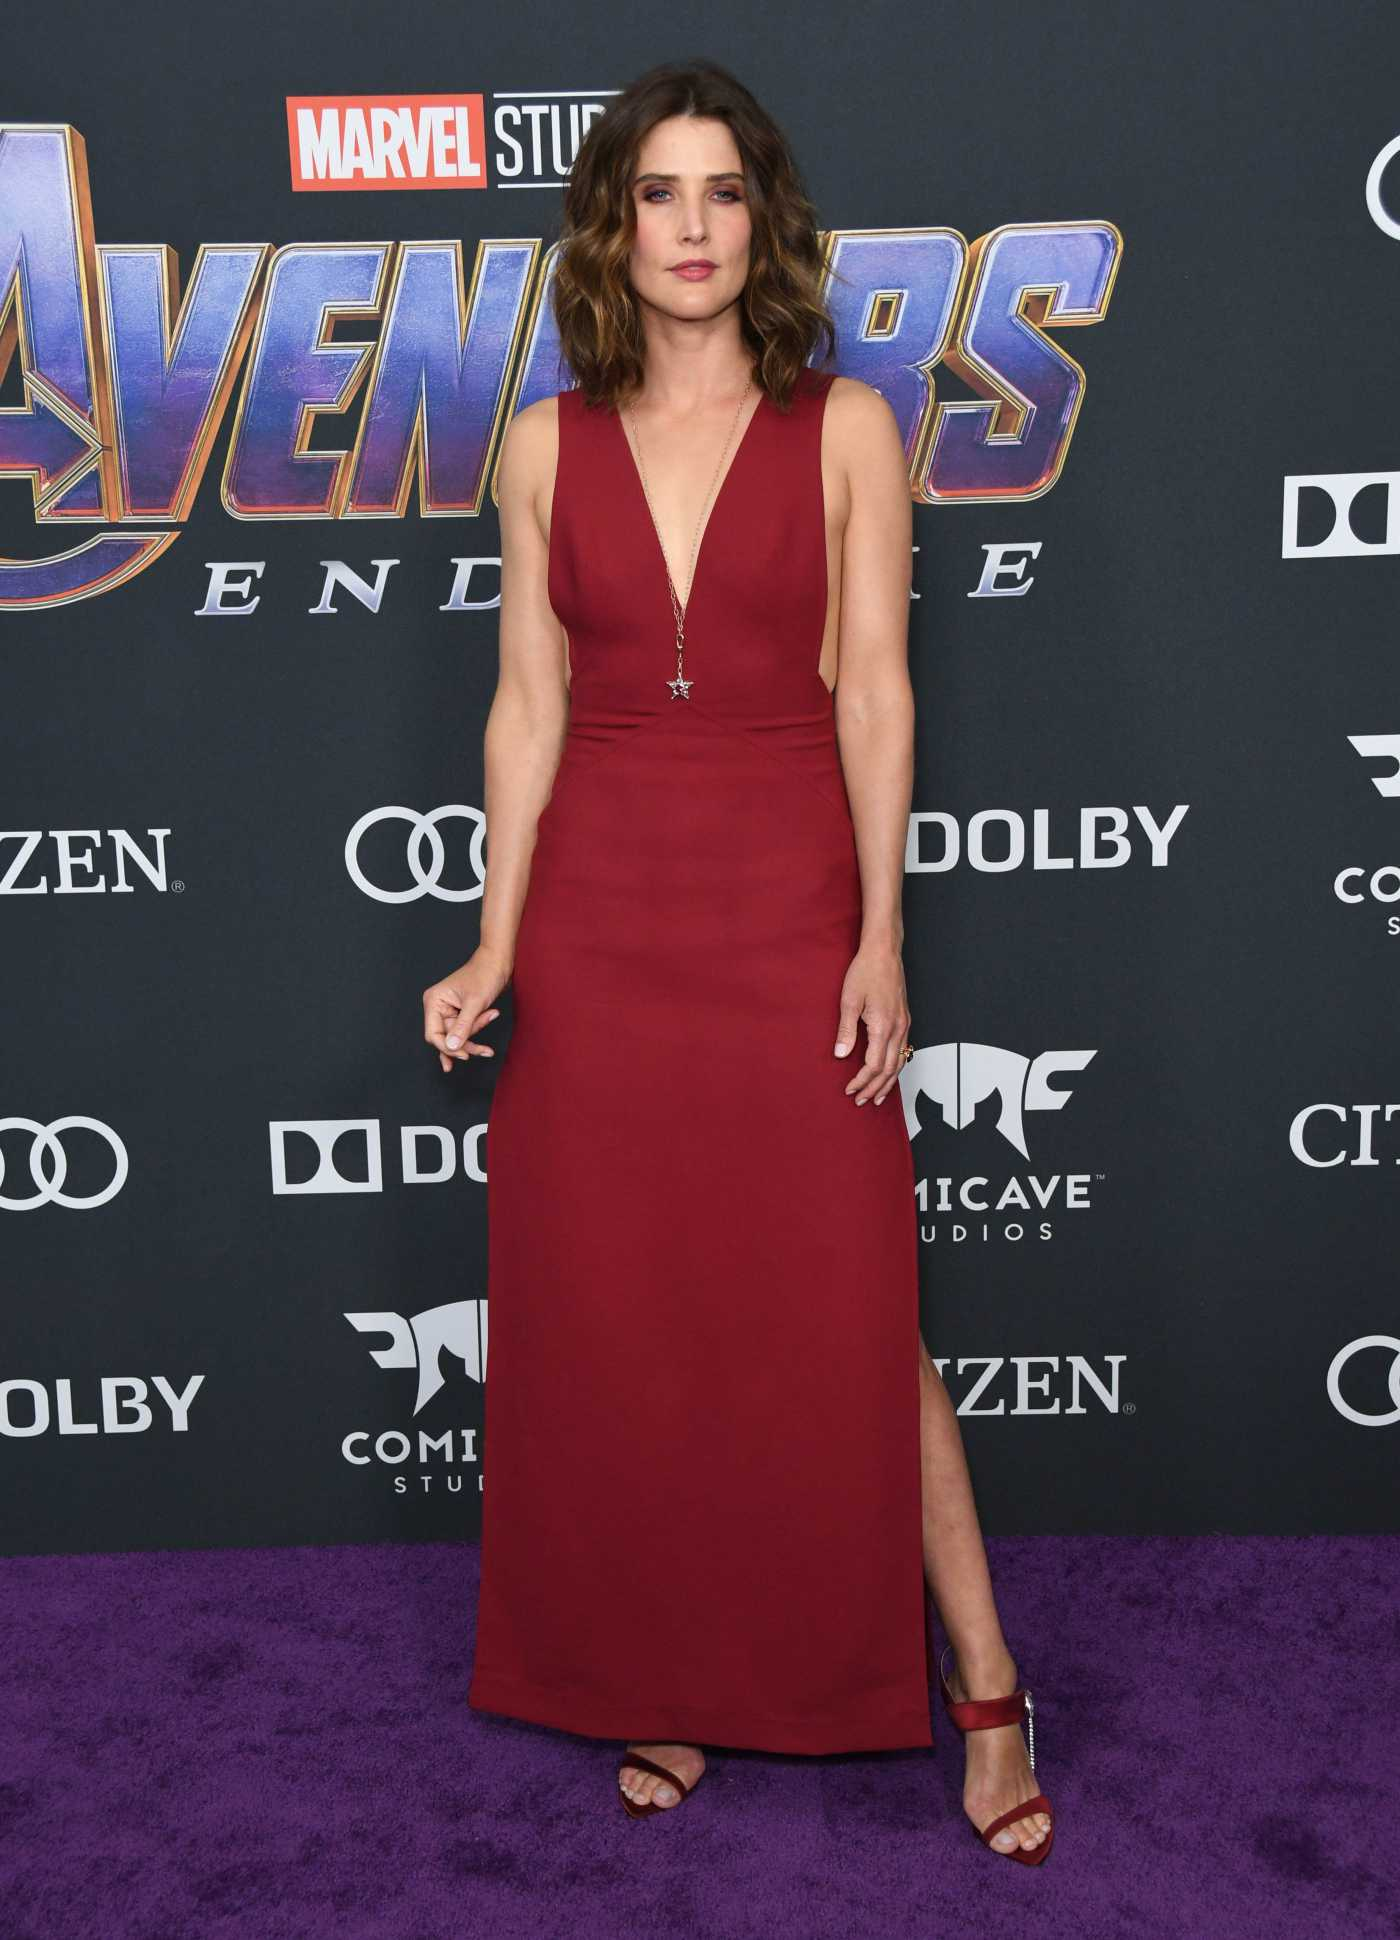 Cobie Smulders Attends Avengers: Endgame Premiere in Los Angeles 04/22/2019